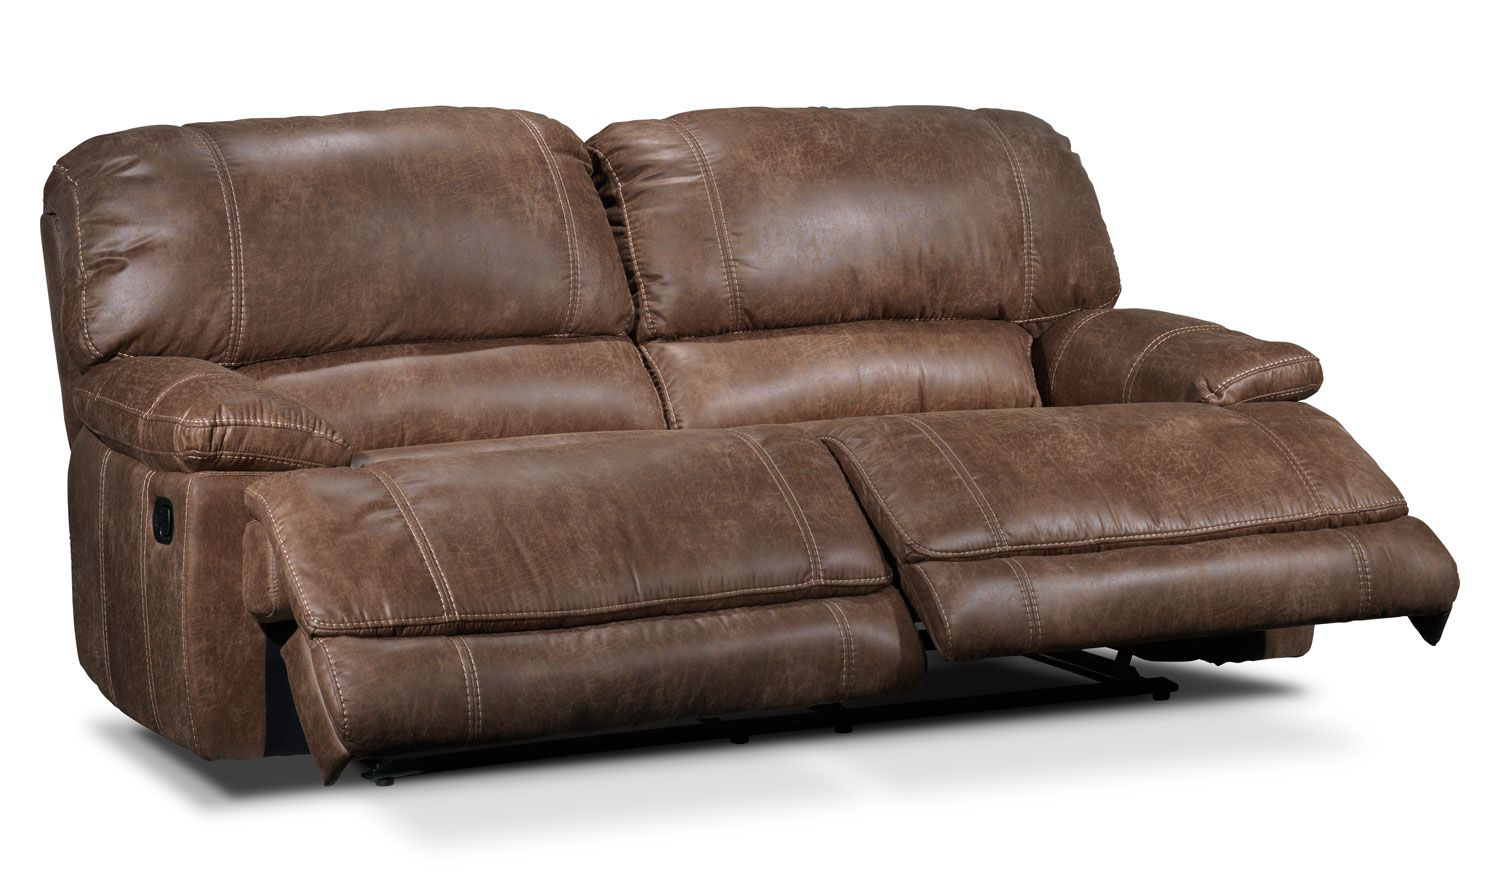 Saddle Up The Rugged Look Of The Durango Reclining Sofa